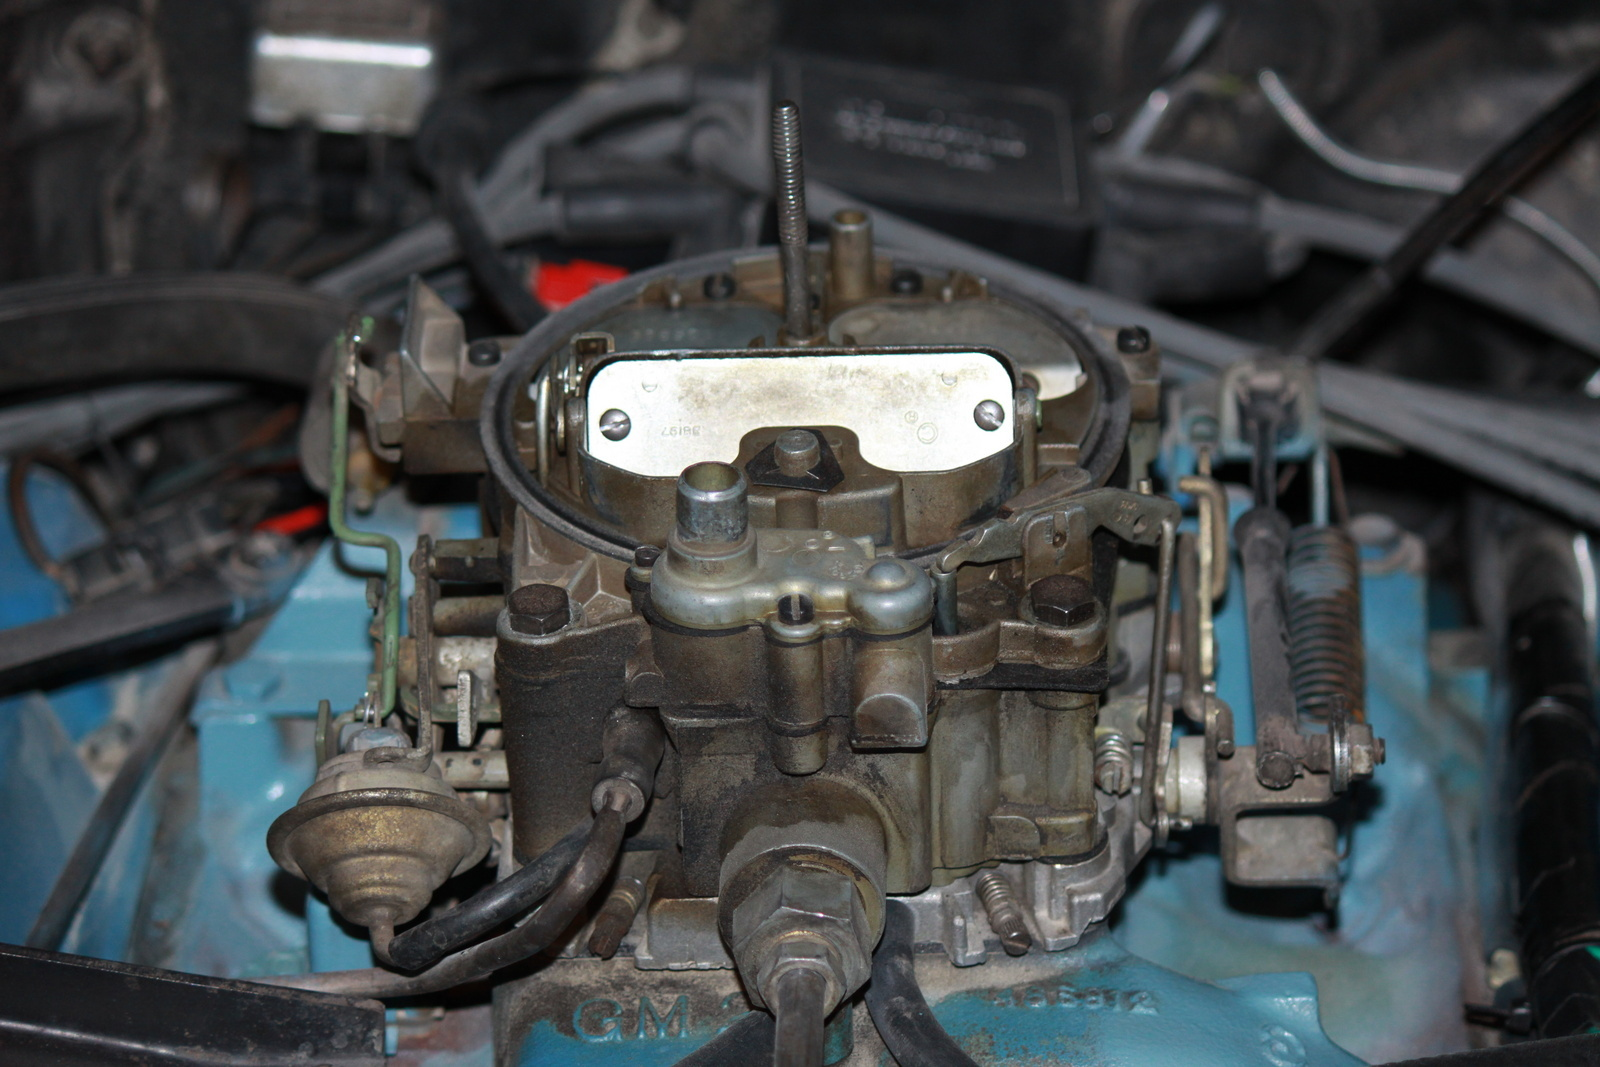 You can sure smell the gas though when you pick up the hood. Heres is  another picture of the carb.